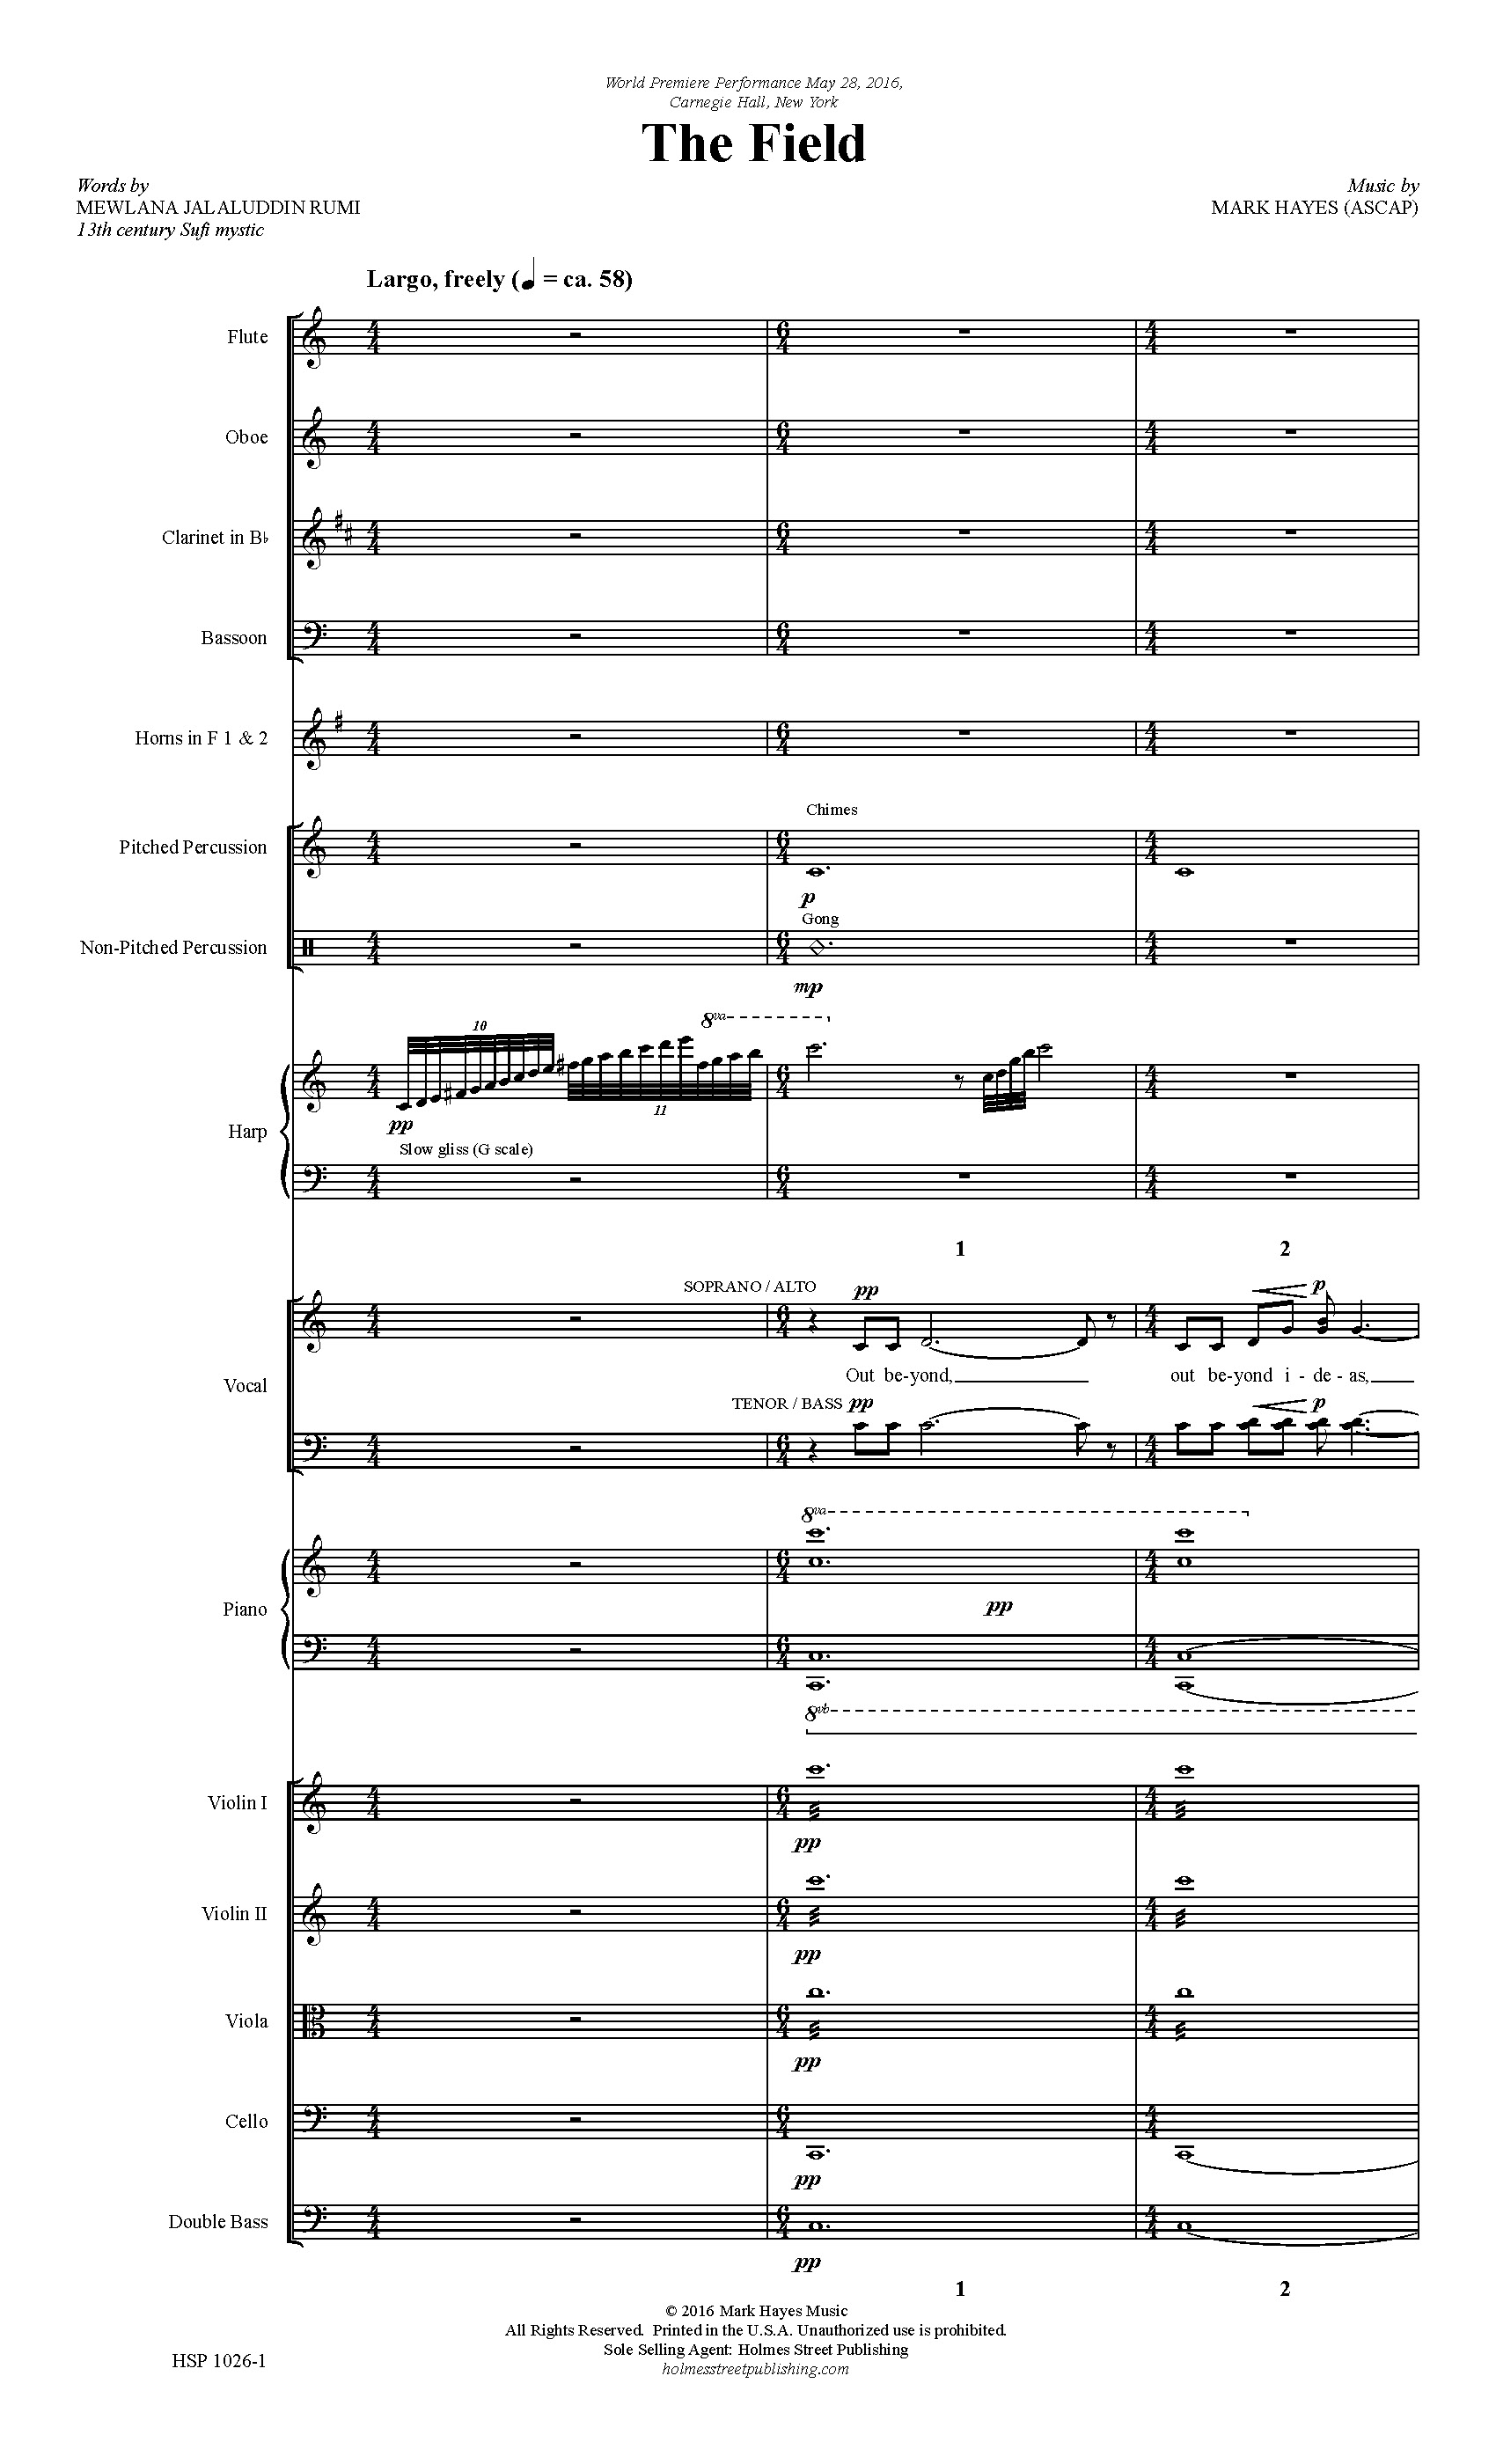 The Field - Instrumental Score and Parts